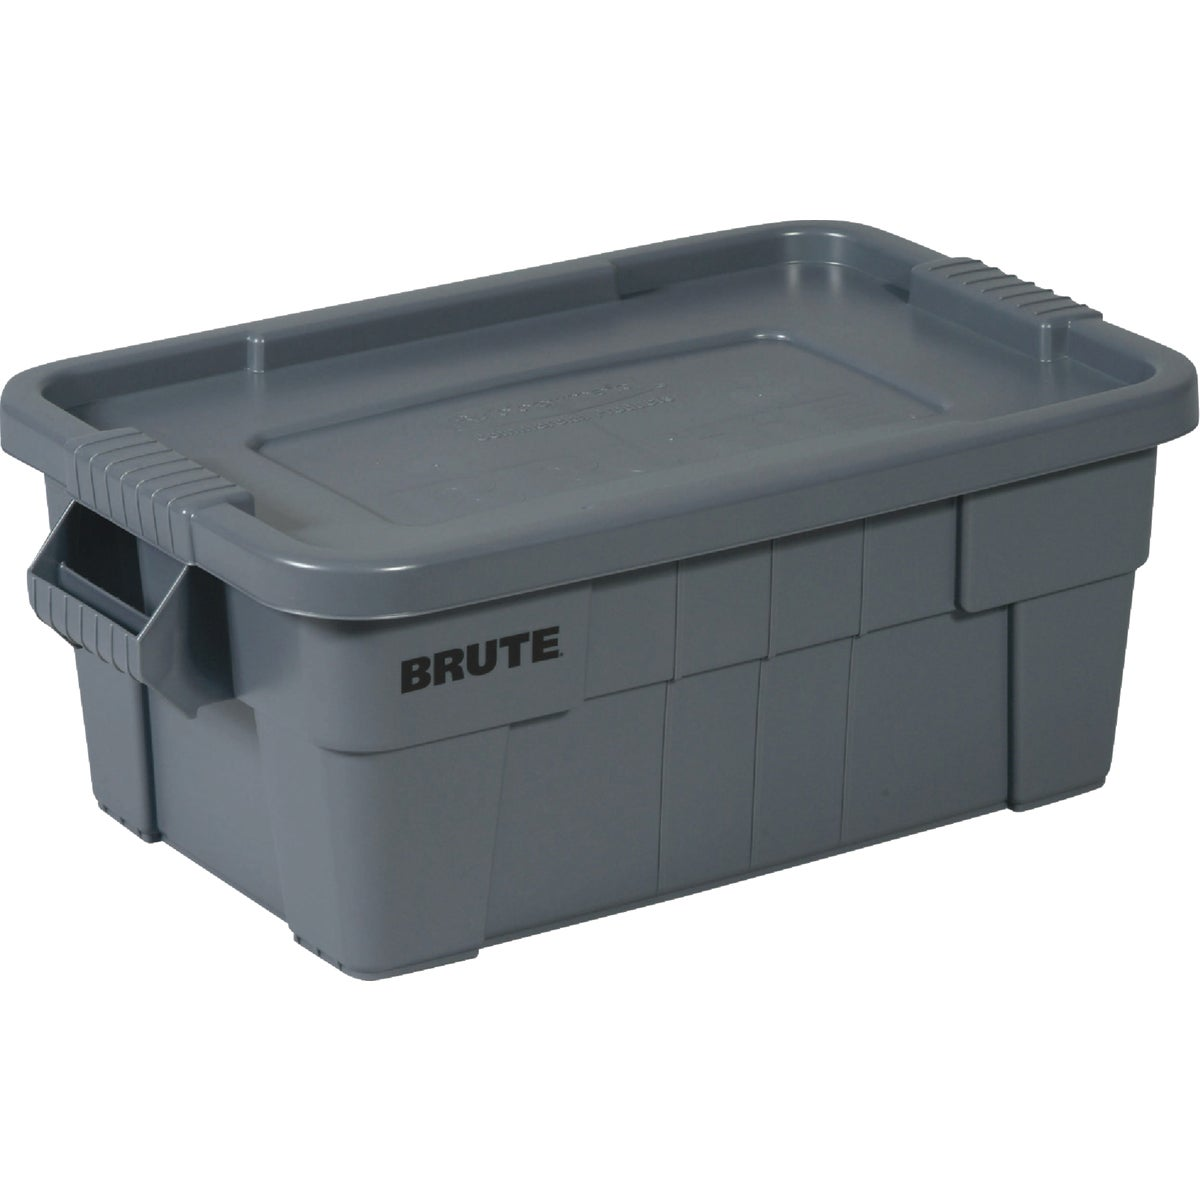 14GAL GRAY BRUTE TOTE - FG9S3000GRAY by Rubbermaid Comm Prod